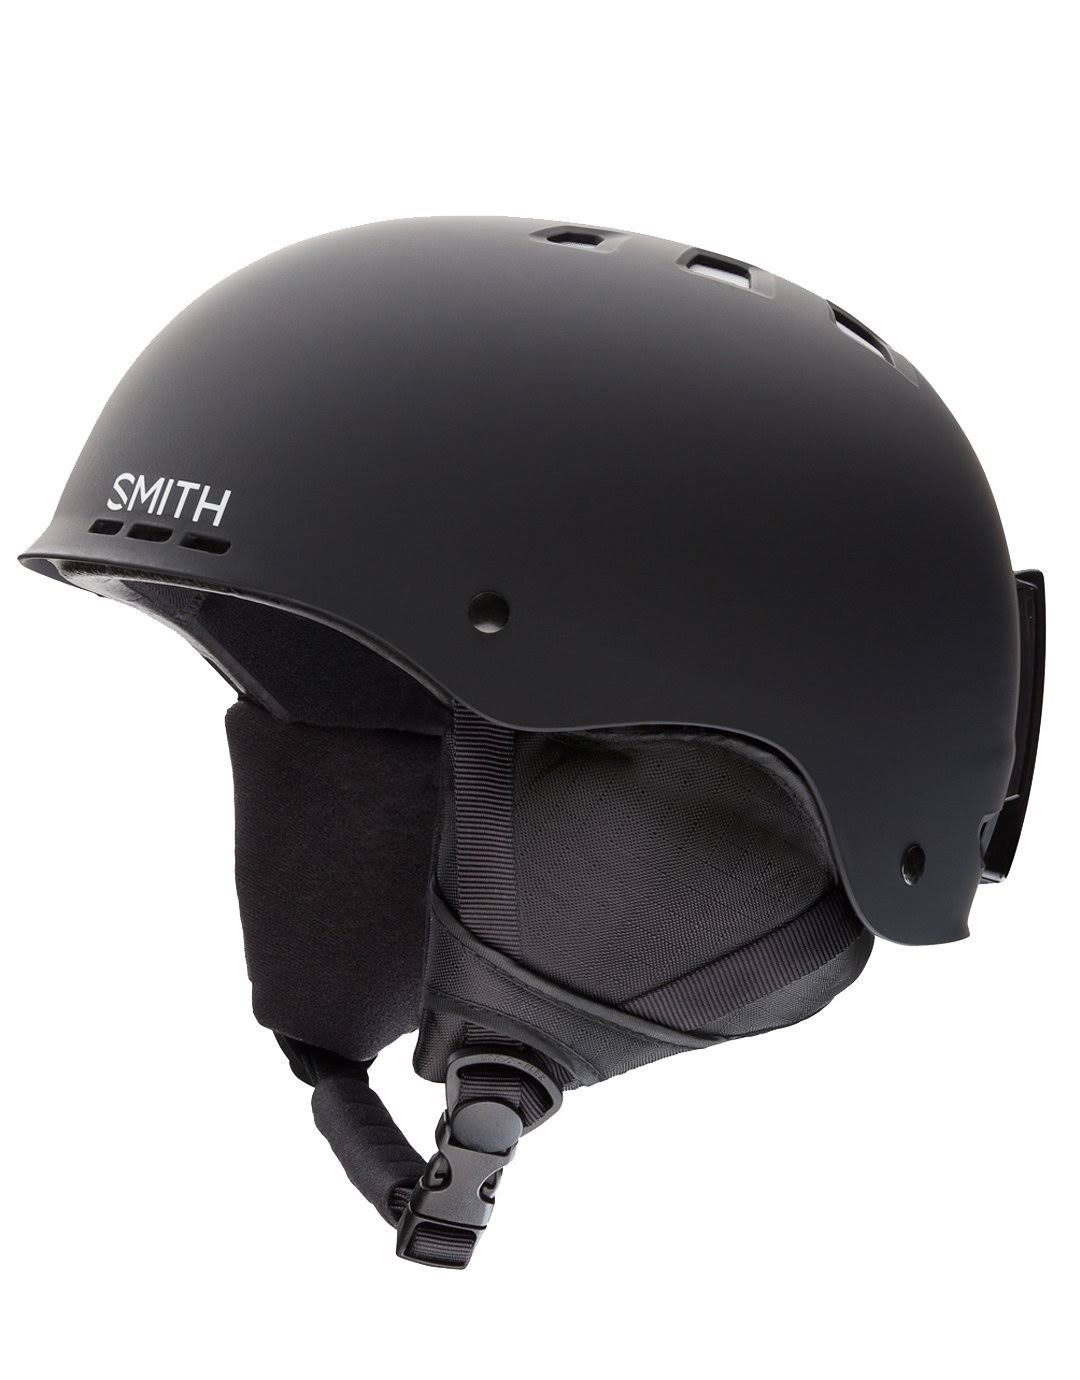 Smith Unisex Holt 2 Ski Snow Helmet - Matte Black, Medium